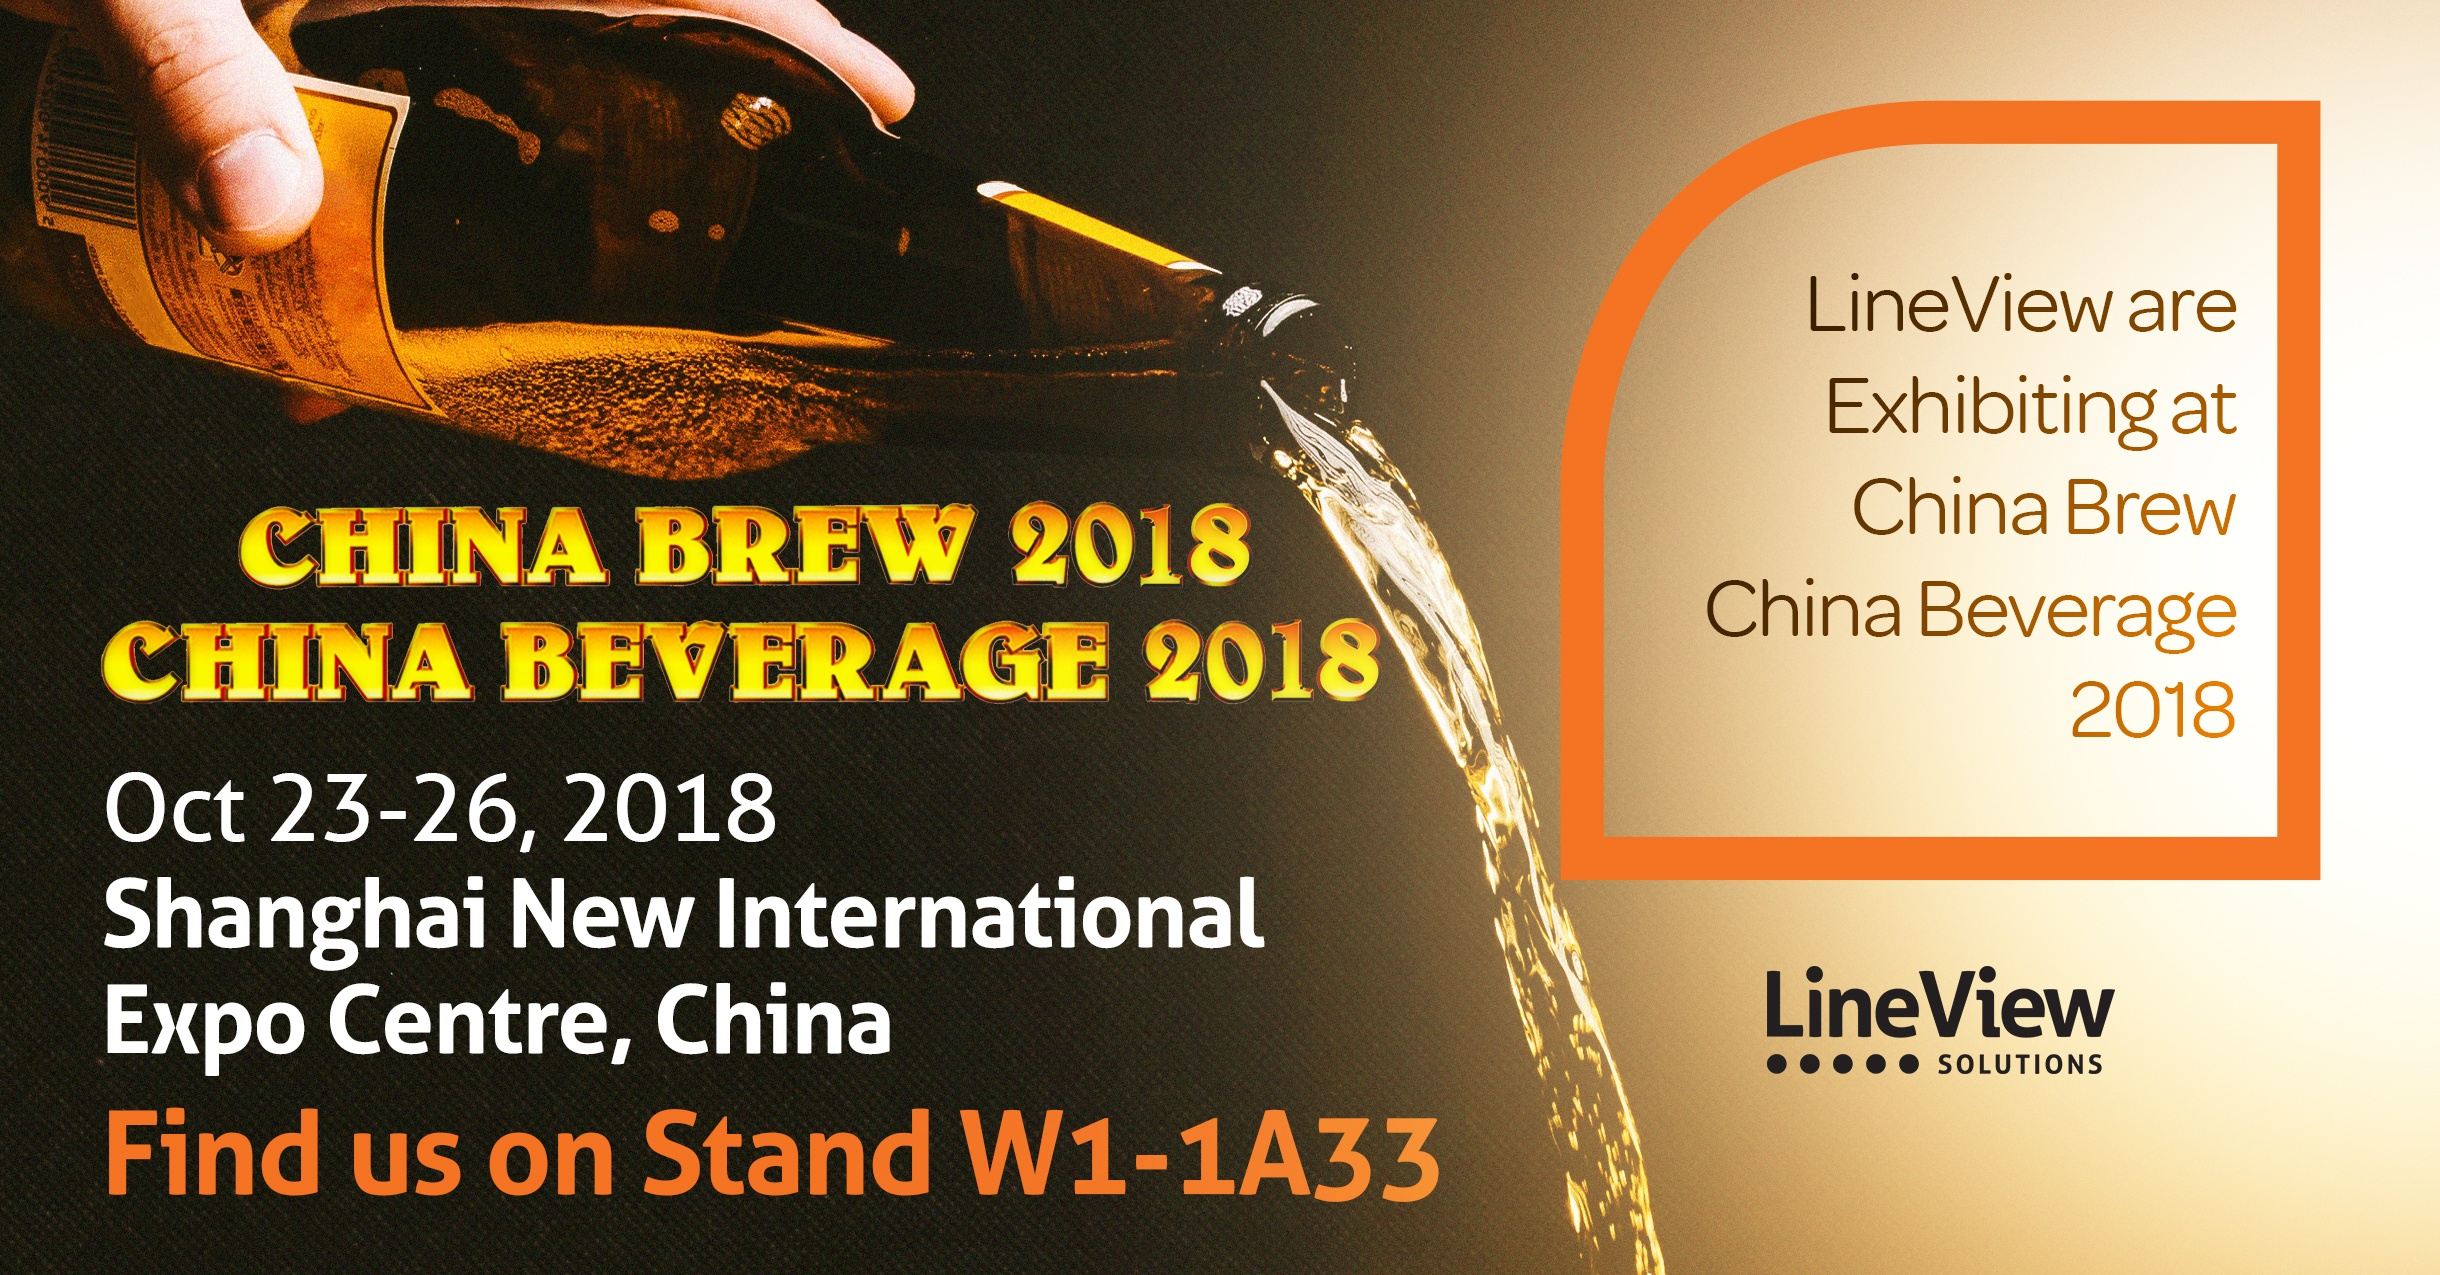 LVS - China Brew China Beverage 2018 (Web Banner).jpg